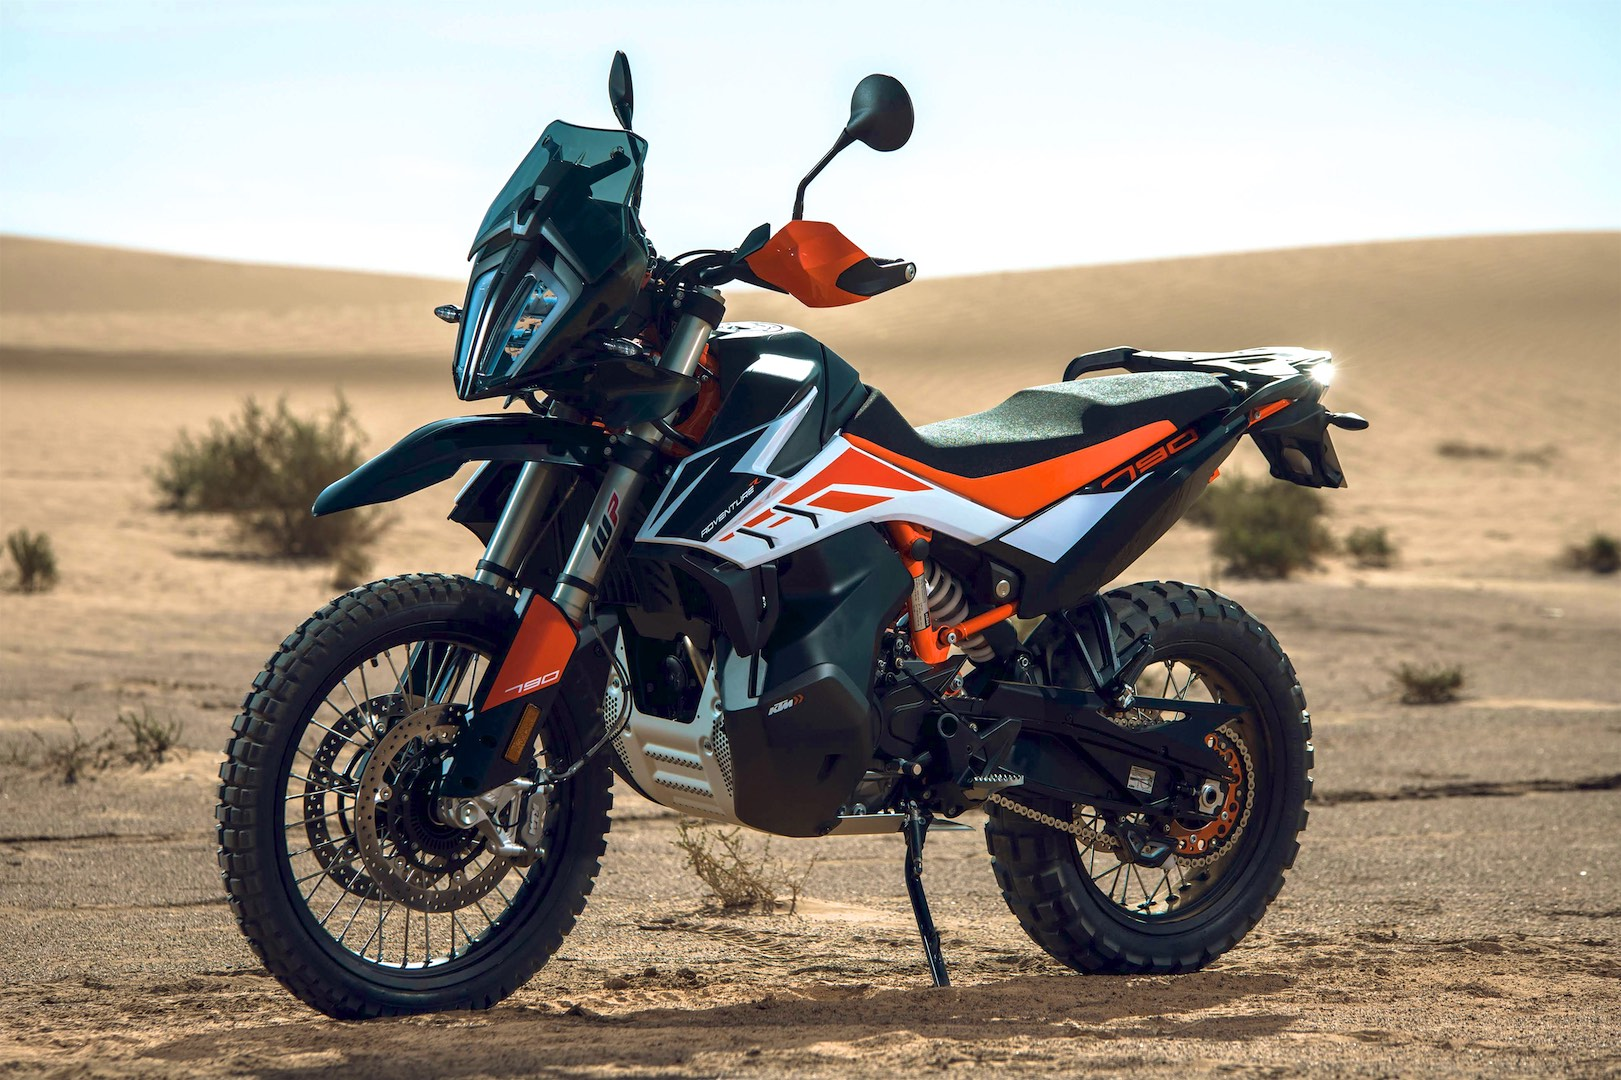 2019 ktm 790 adventure and 790 adventure r review 21 fast. Black Bedroom Furniture Sets. Home Design Ideas